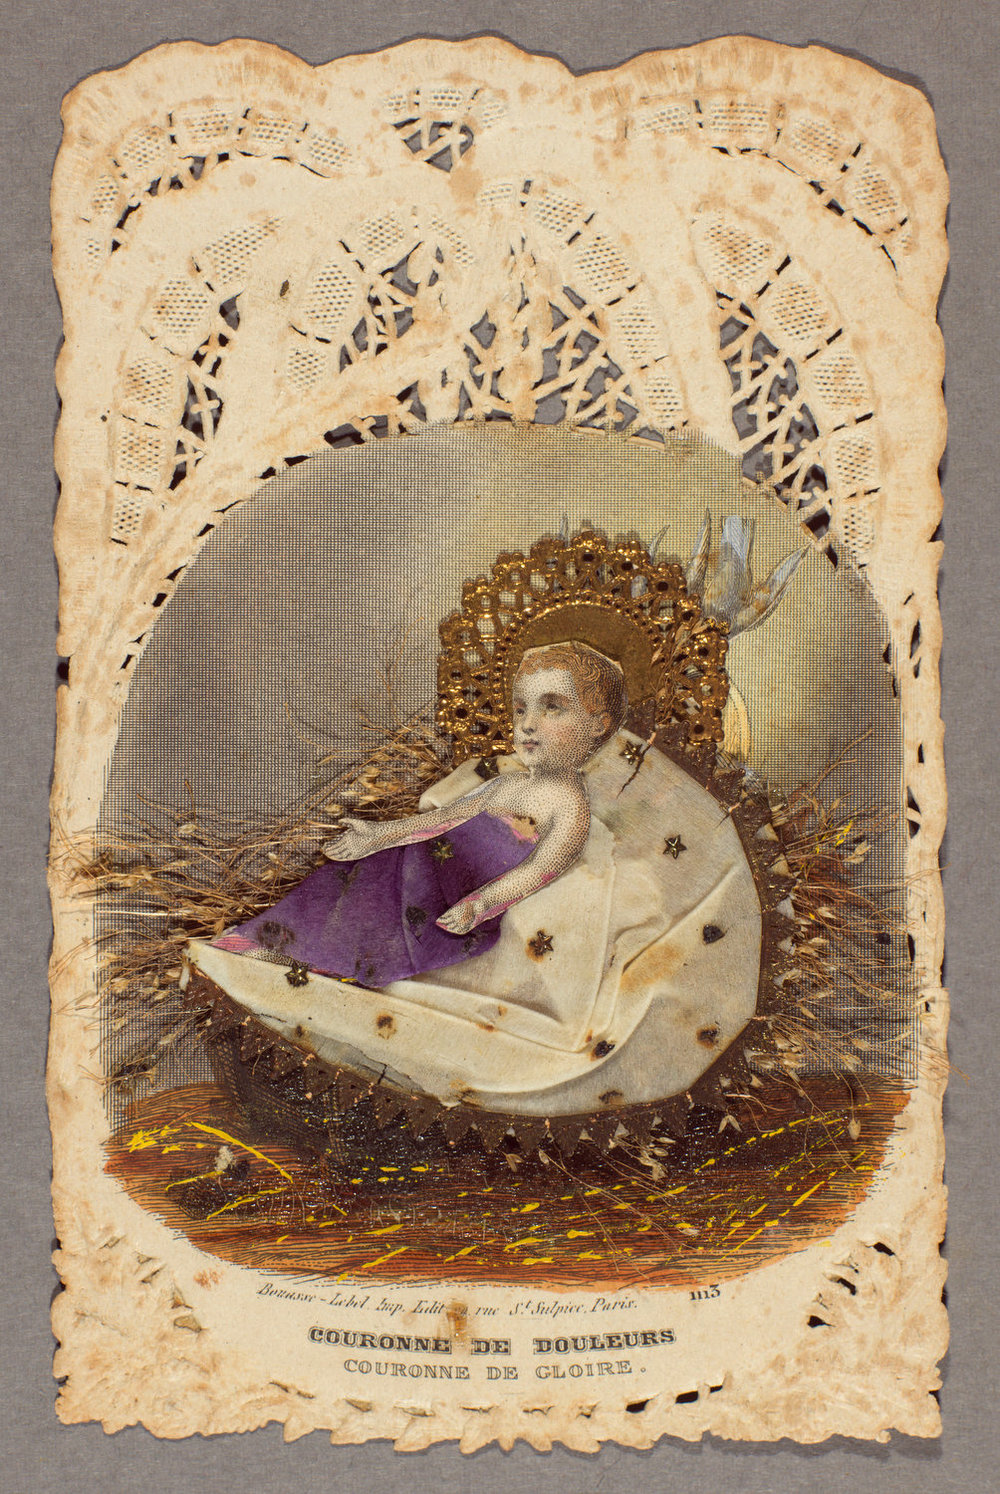 "A devotional card made in Paris in the mid-1800s that reads, ""Crown of sorrows, crown of glory."" The image is engraved on lace paper, with applied elements including die-cut and gilded scraps, tissue and dried flowers."